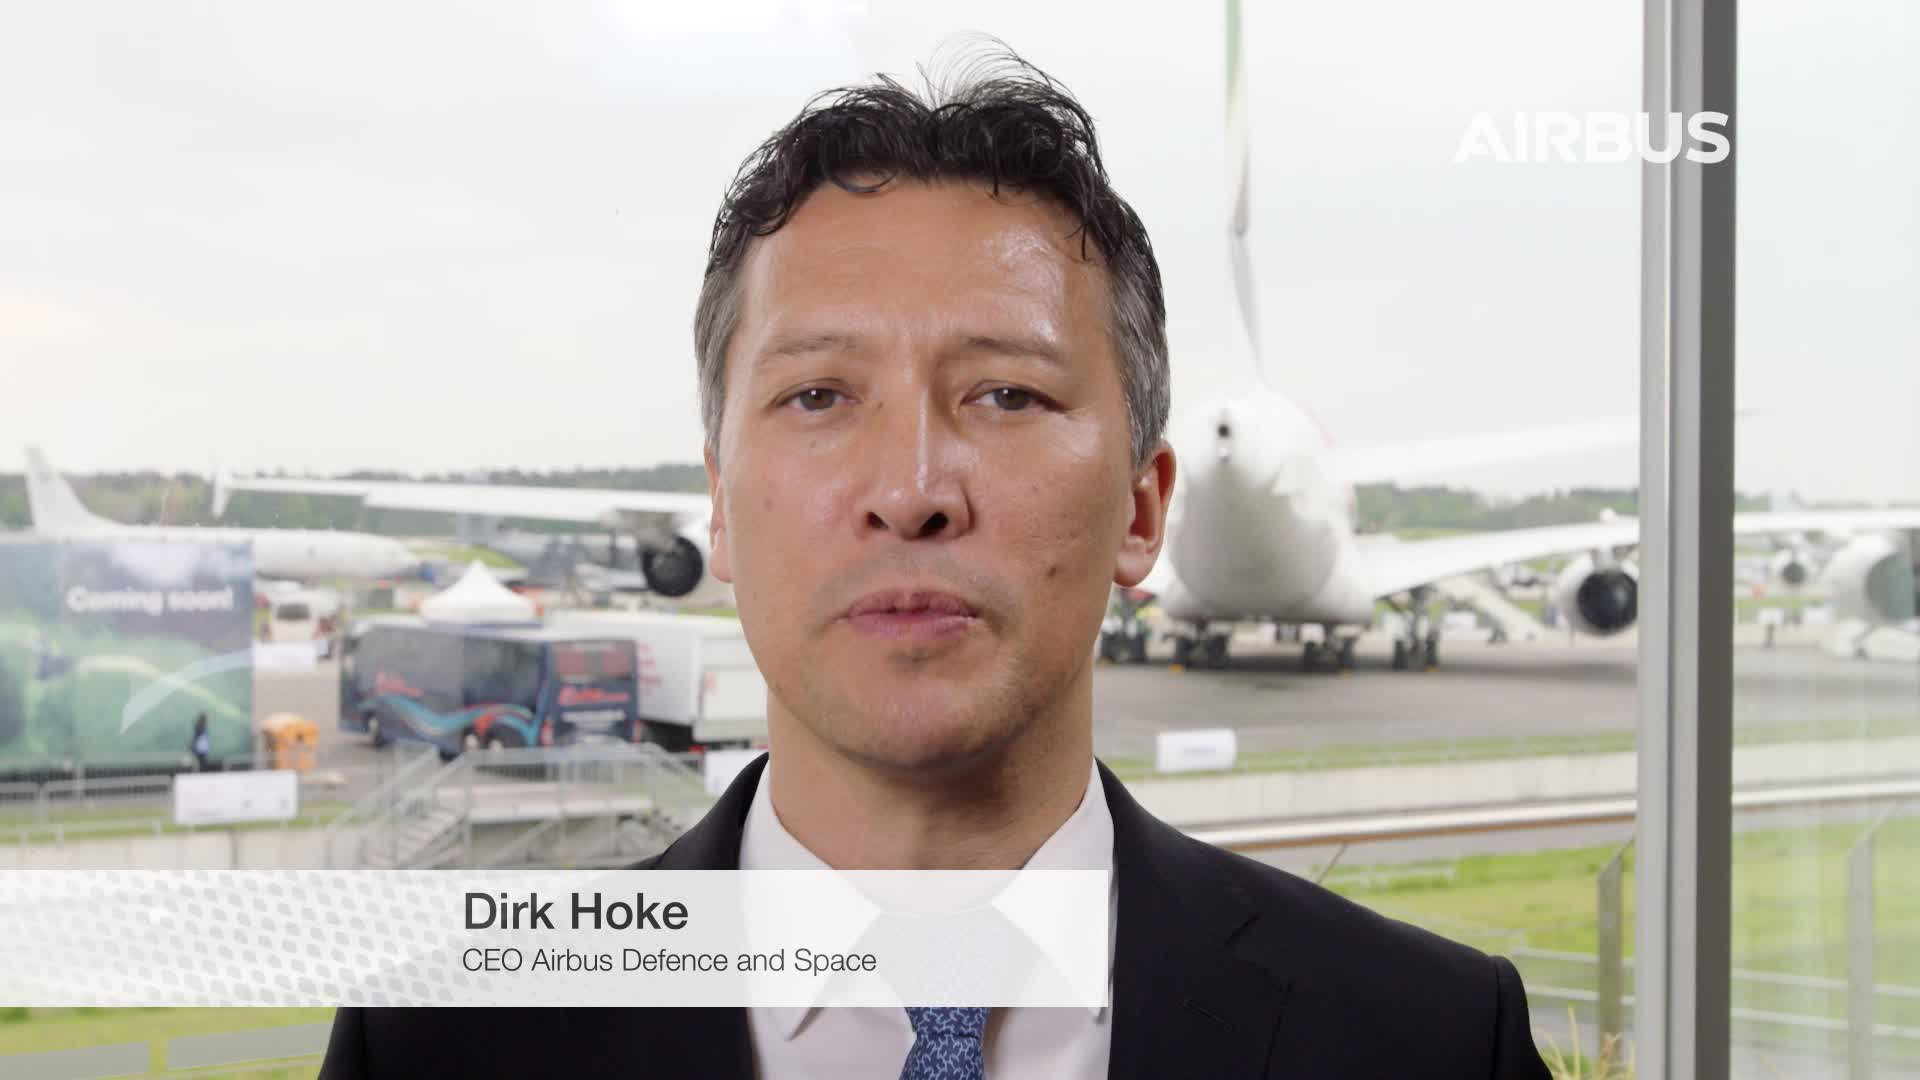 Interview of Dirk Hoke, CEO Airbus Defence and Space